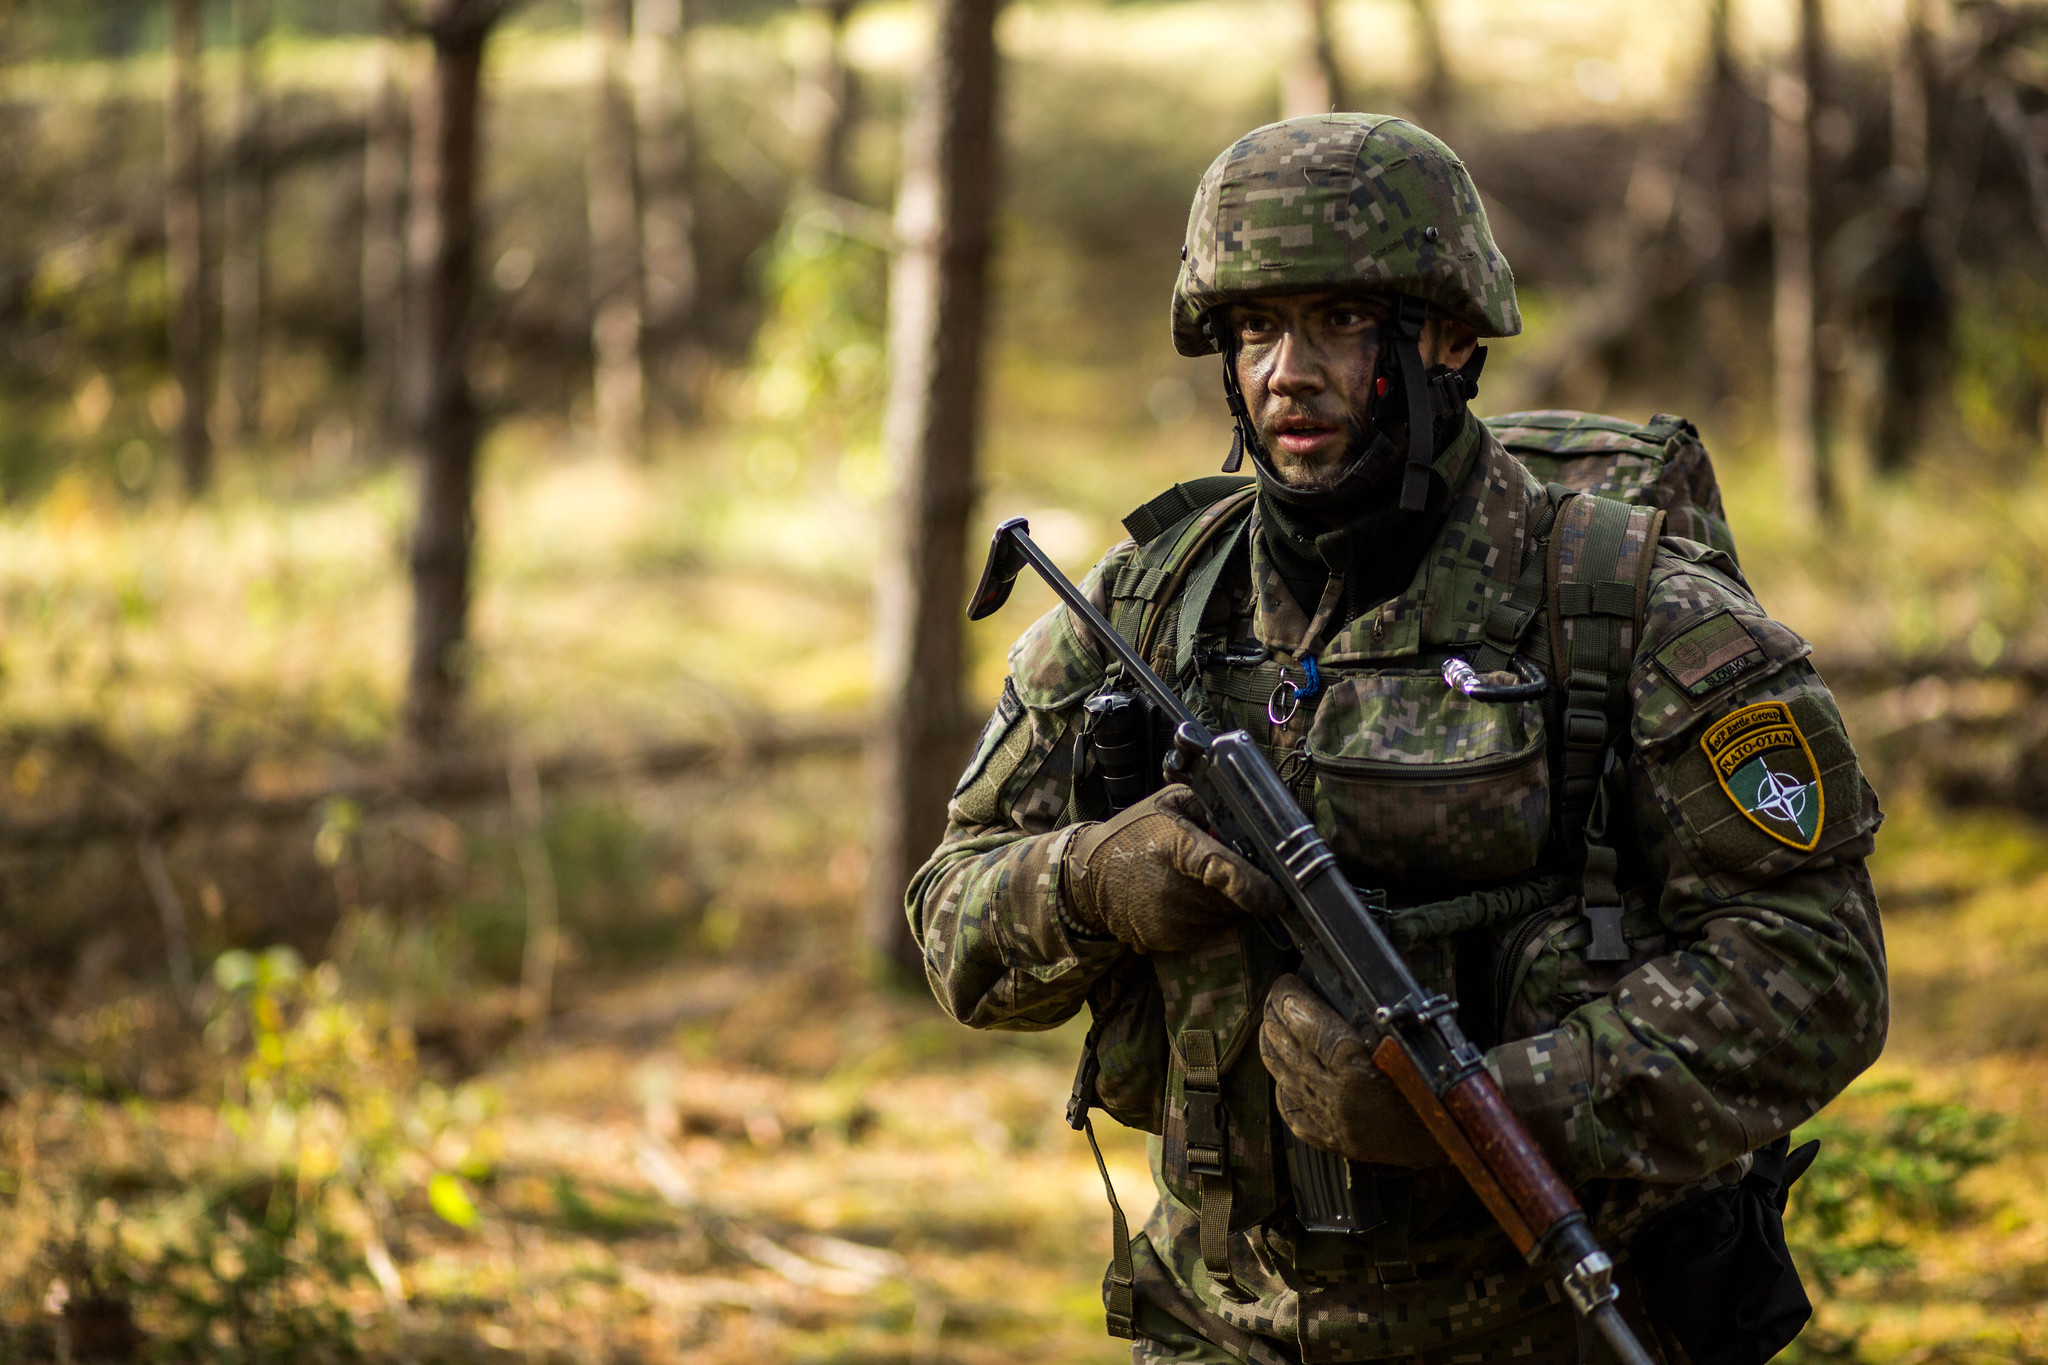 A Slovak soldier with Stefanik Company marches down a road in eastern Latvia. Stefanik Company, a mechanized infantry unit currently based in ?daži, Latvia, is Slovakia's first contribution to NATO's enhanced Forward Presence in Eastern Europe.